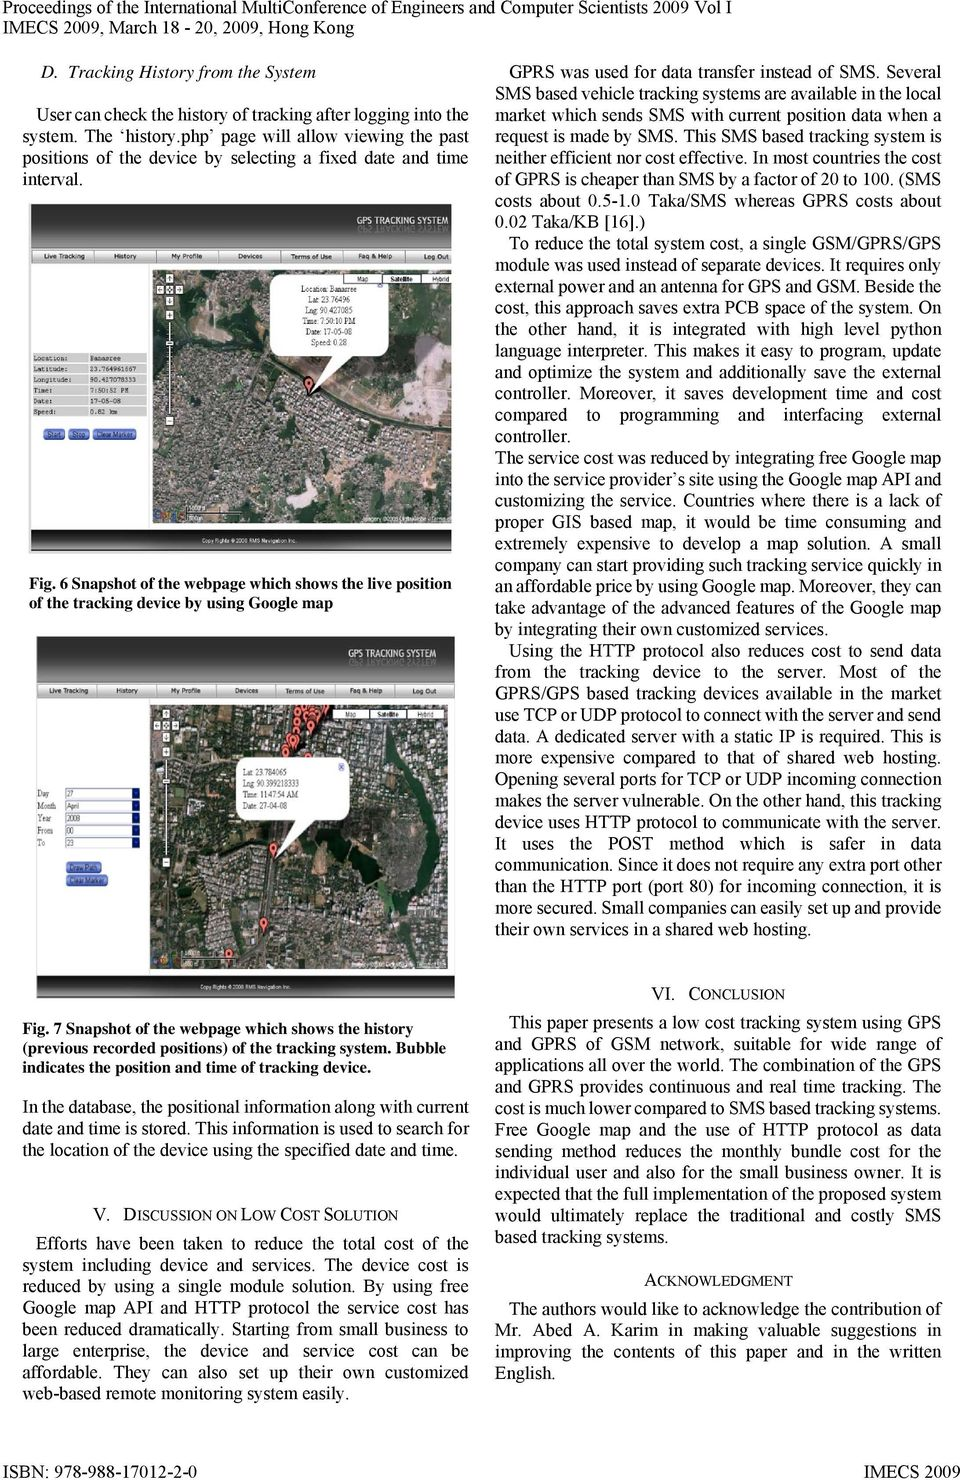 6 Snapshot of the webpage which shows the live position of the tracking device by using Google map GPRS was used for data transfer instead of SMS.